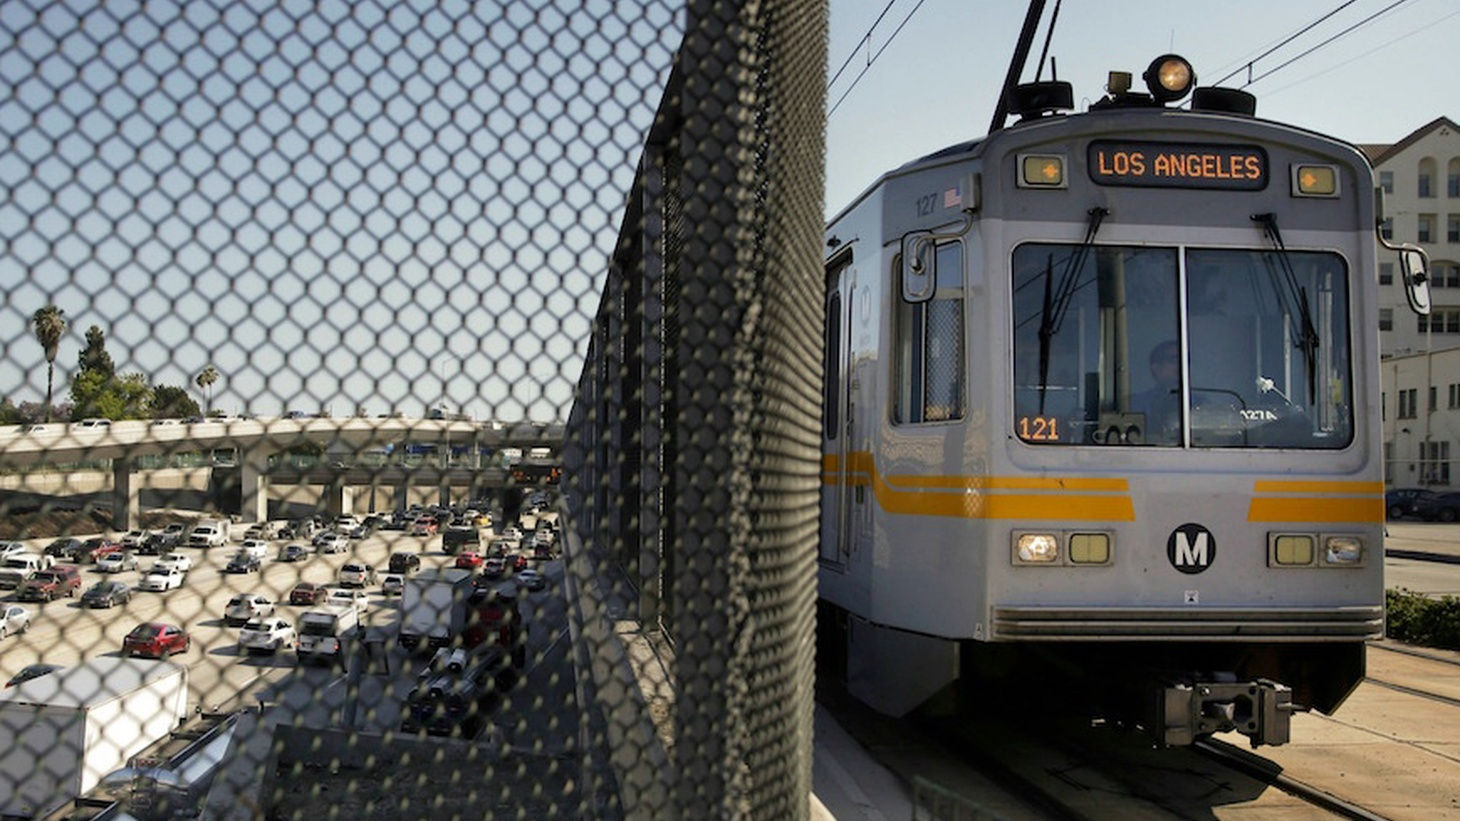 Zócalo Public Square columnist is on board with the MTA's expanded rail service – the Gold Line extension into the San Gabriel Valley and the Expo Line between downtown LA and Santa Monica. Thanks to a voter-approved tax extension, he says LA is building a light rail network that could be the envy of the state, if Metro makes the riding experience fun.